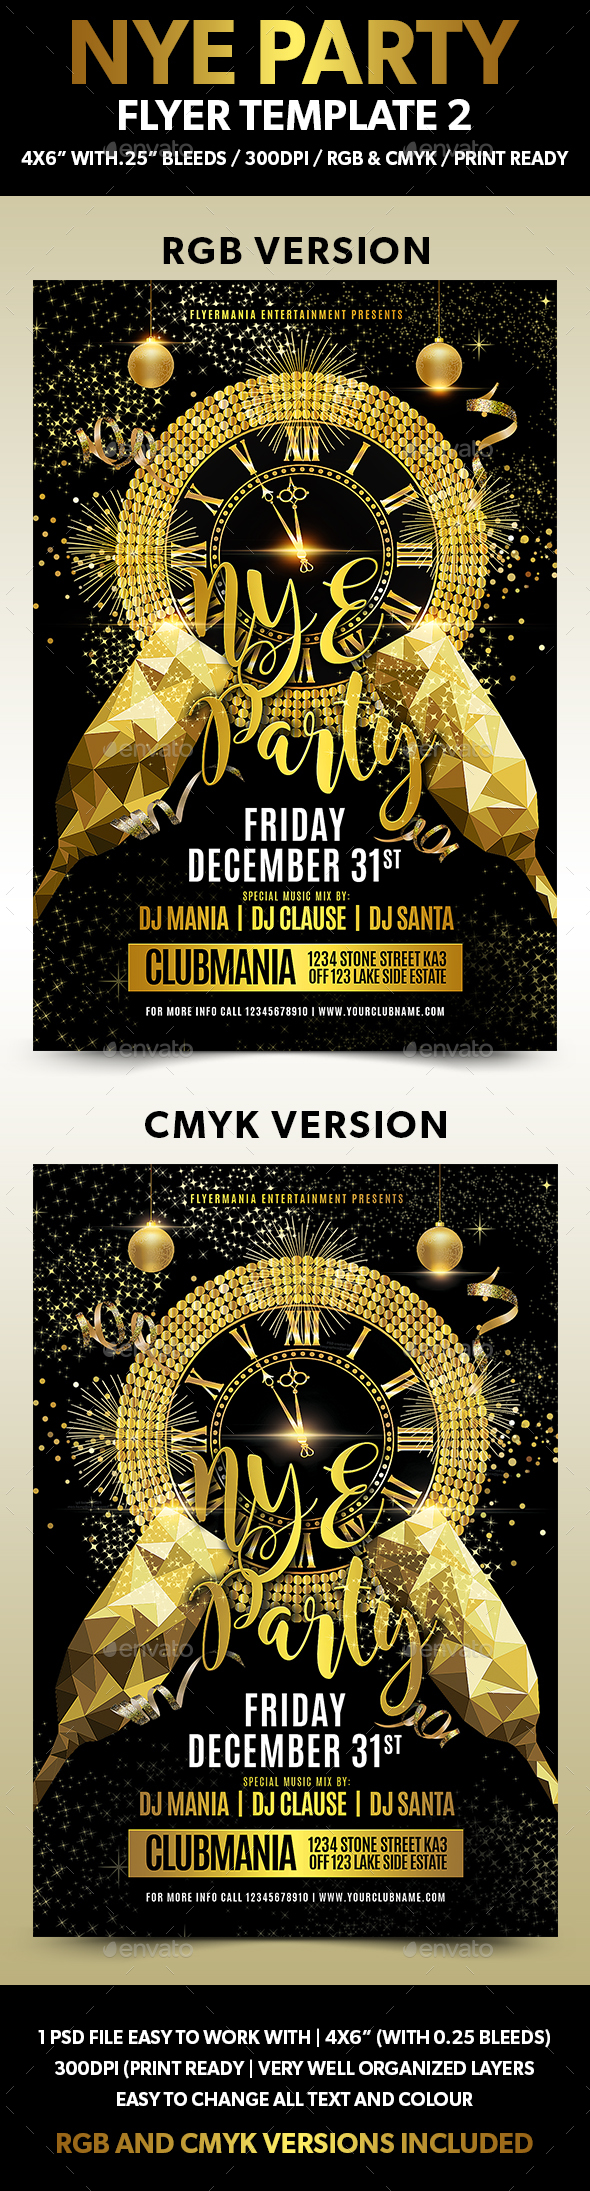 NYE Party Flyer Template 2 - Flyers Print Templates